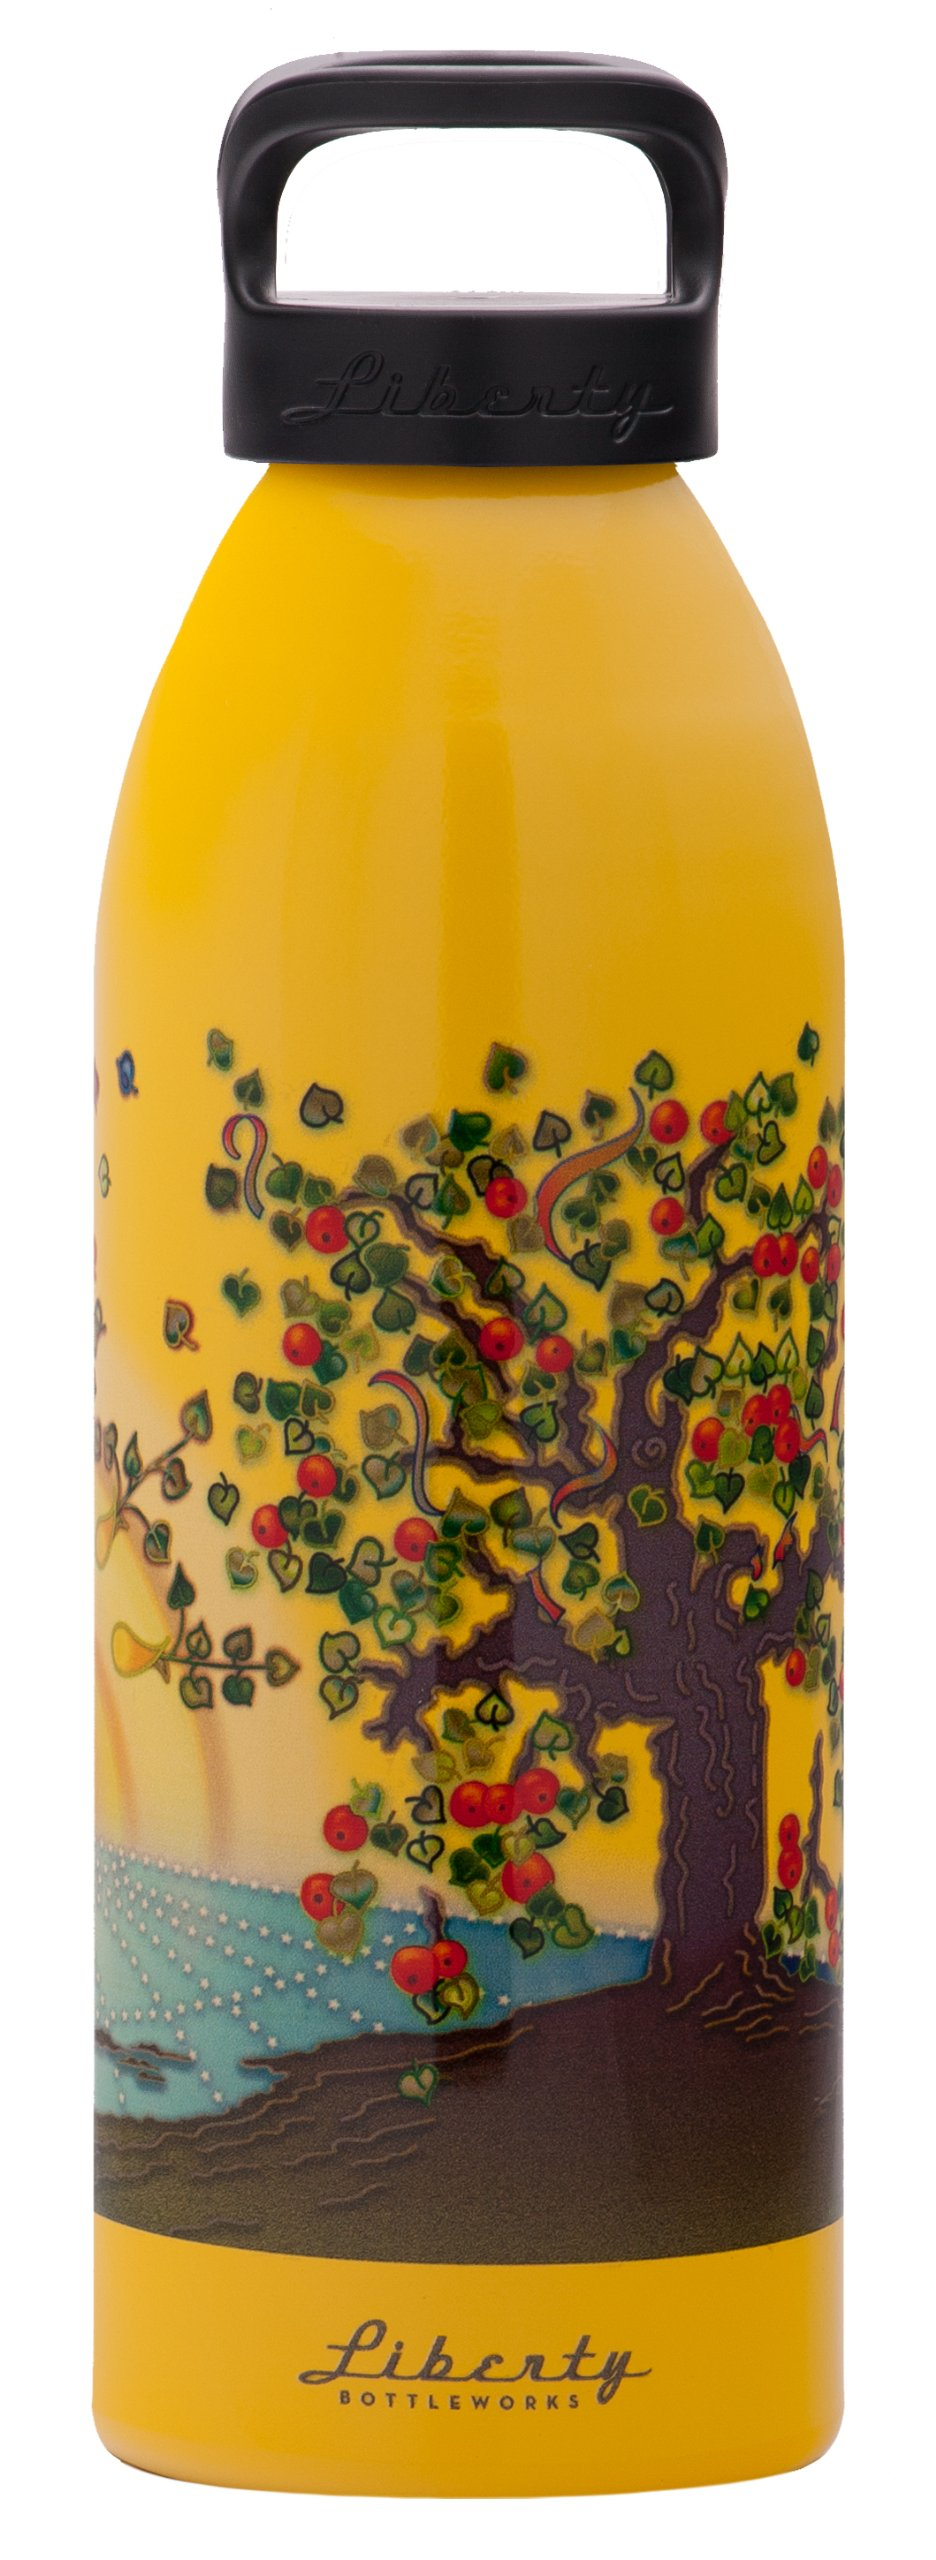 Liberty Bottleworks Essence Aluminum Water Bottle, Made in USA, 24oz, Saffron, Standard Cap by Liberty Bottleworks (Image #1)